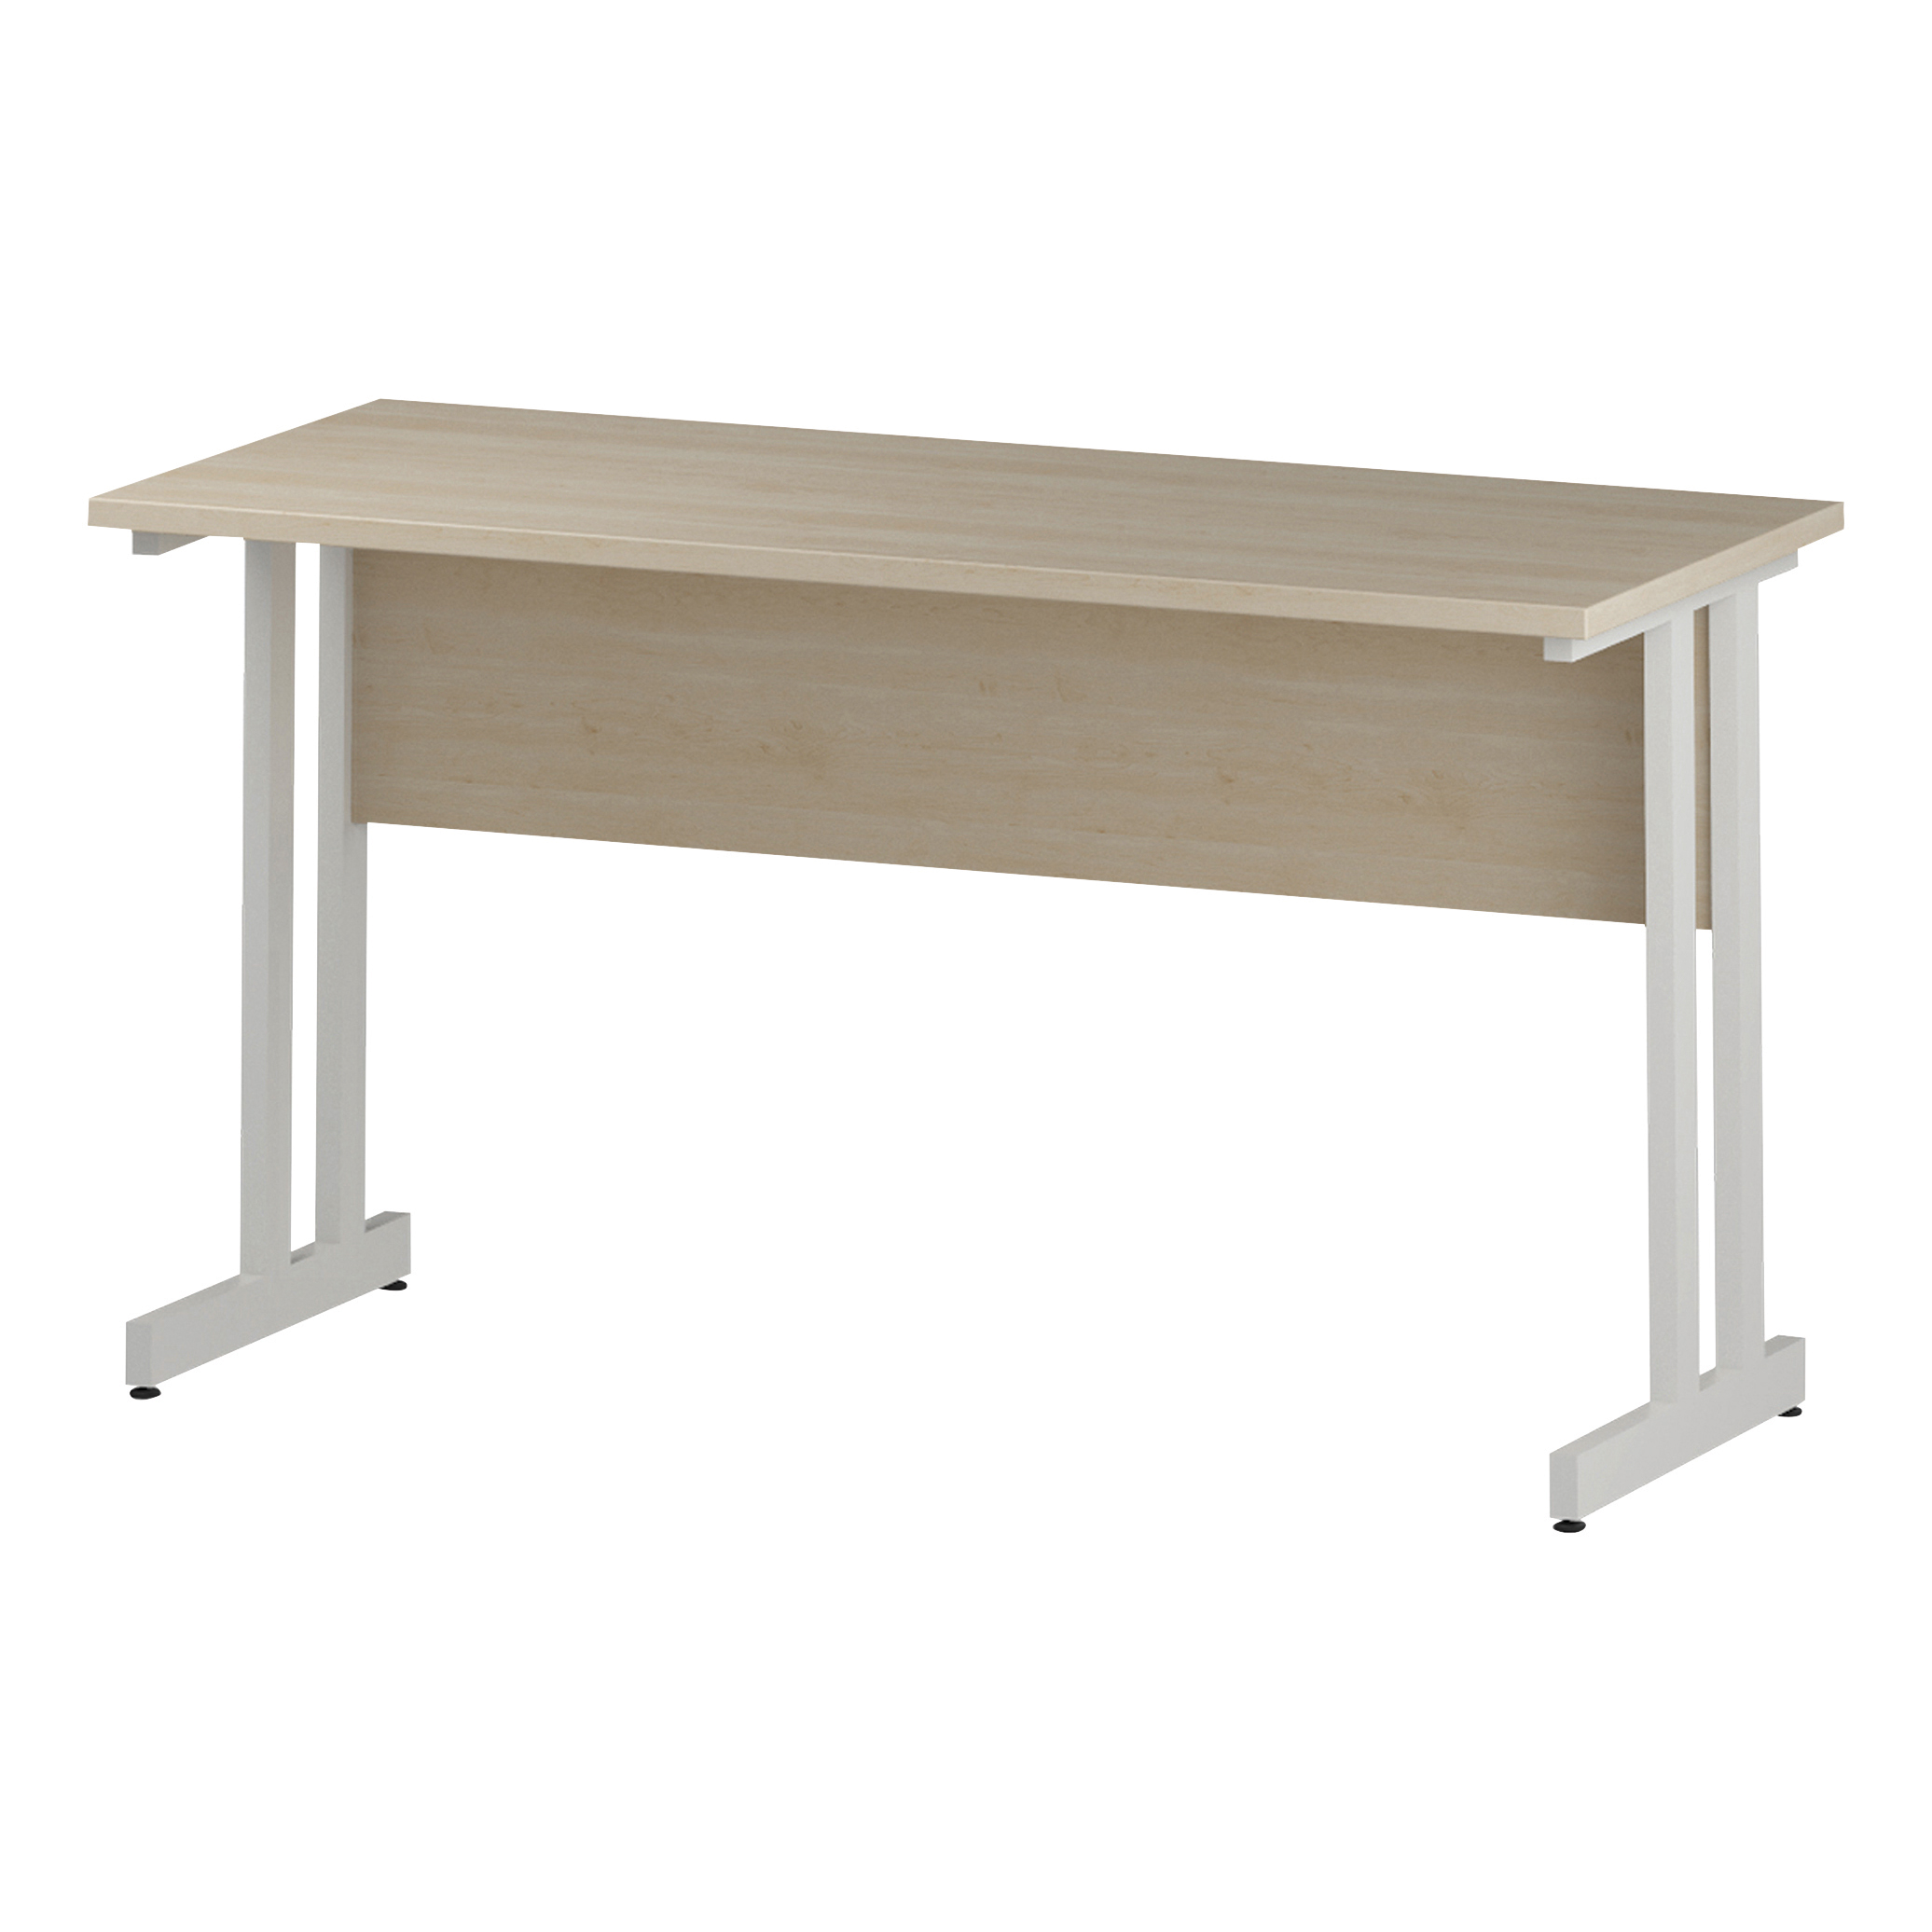 Trexus Rectangular Slim Desk White Cantilever Leg 1400x600mm Maple Ref I002428